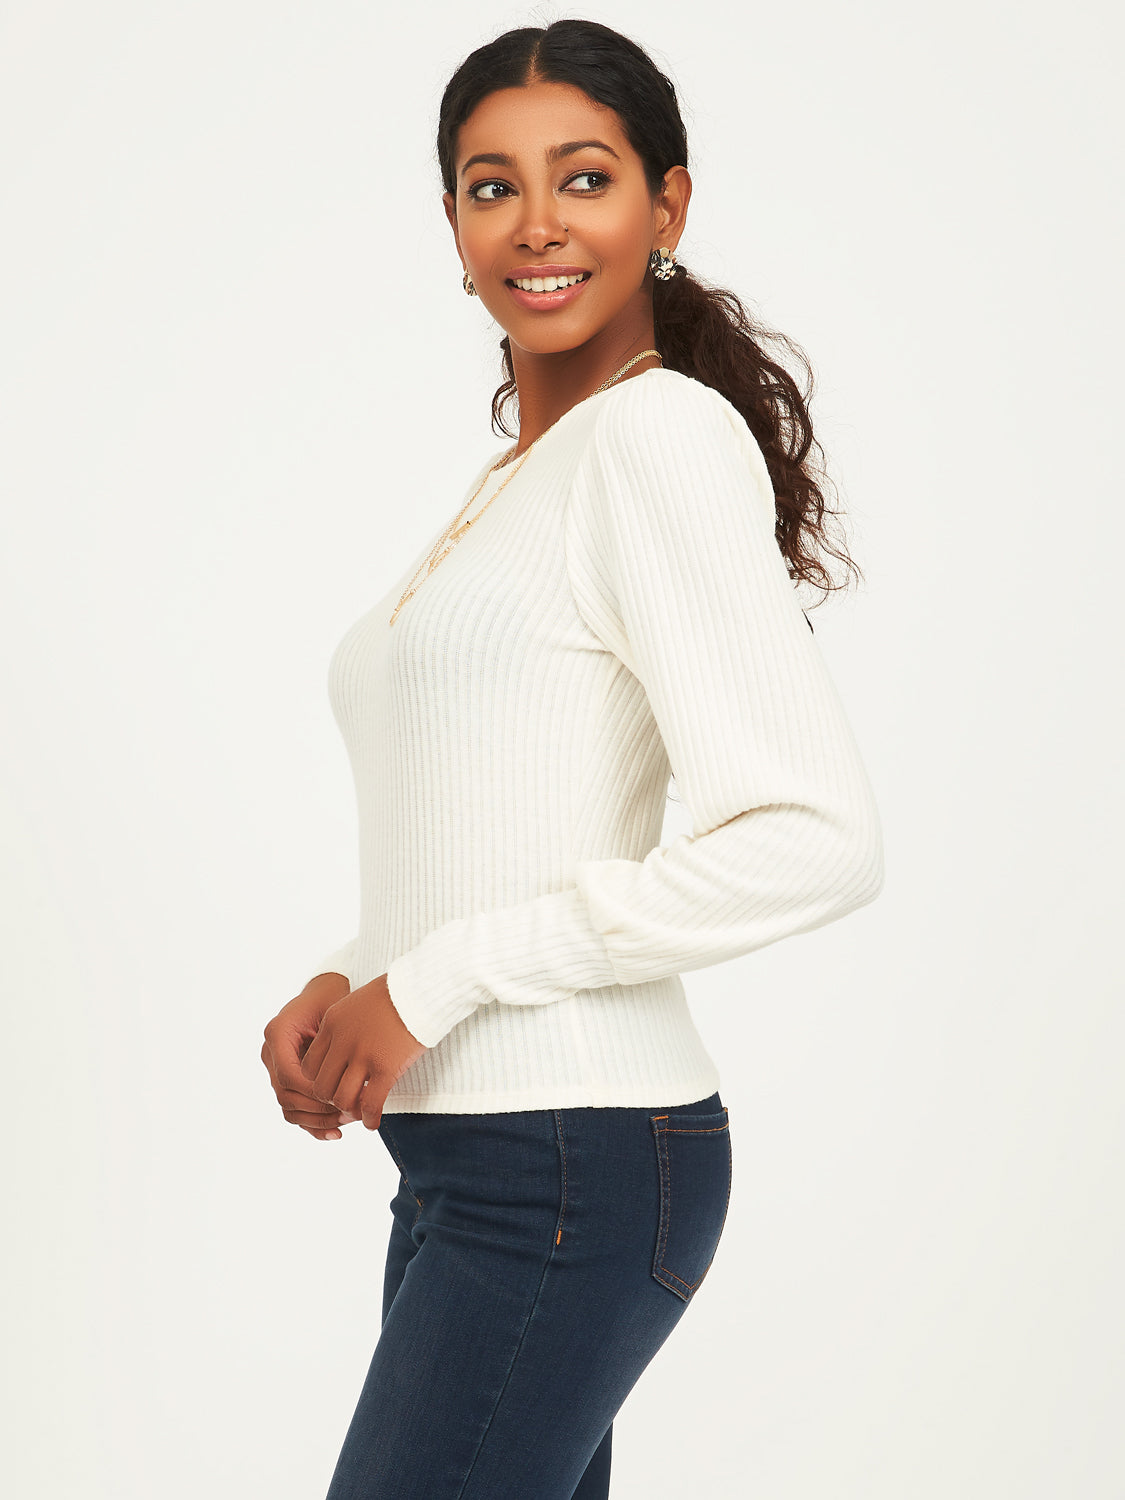 ¾ Sleeve Sweater With Boat Neck